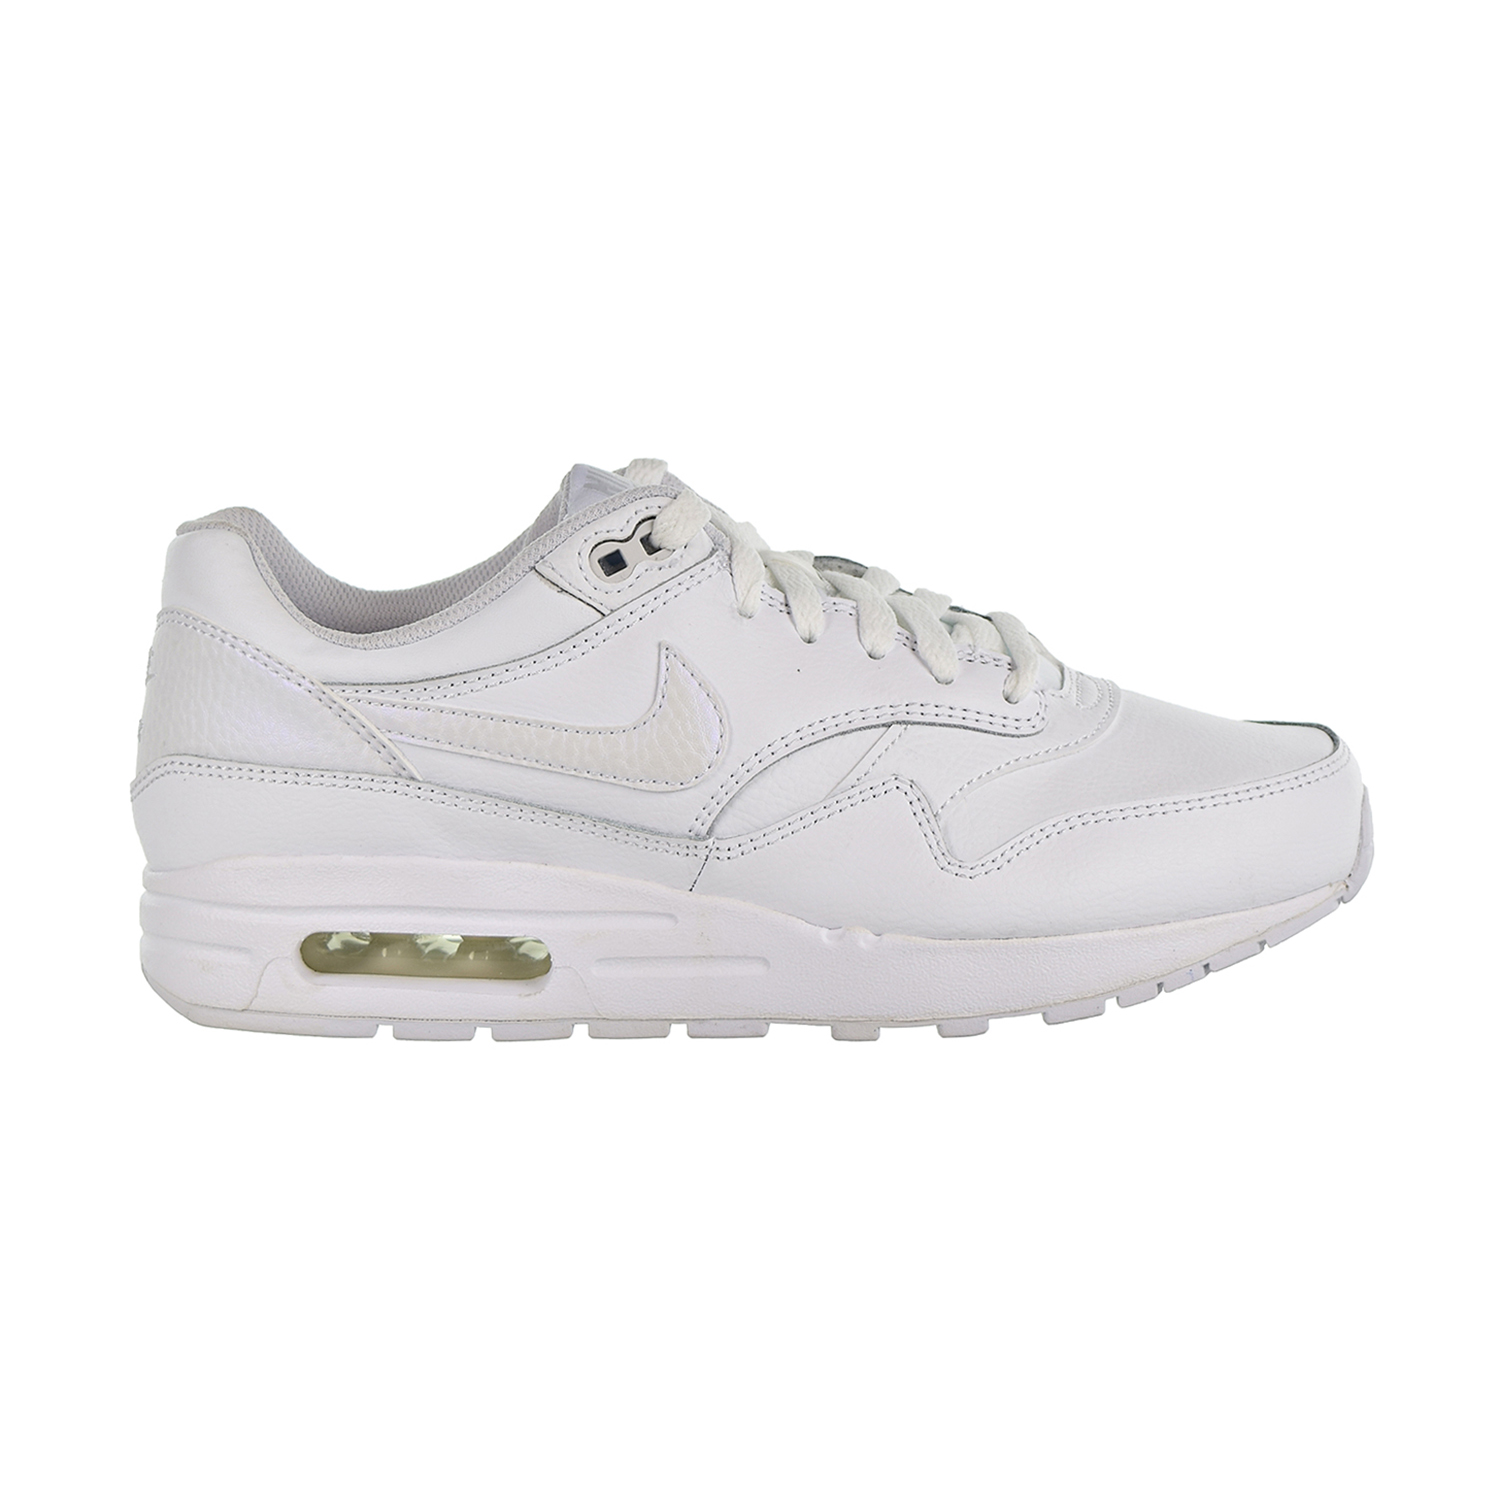 plus récent b9150 060c4 Details about Nike Air Max 1 Big Kids' Shoes White/Vast Grey 807605-105